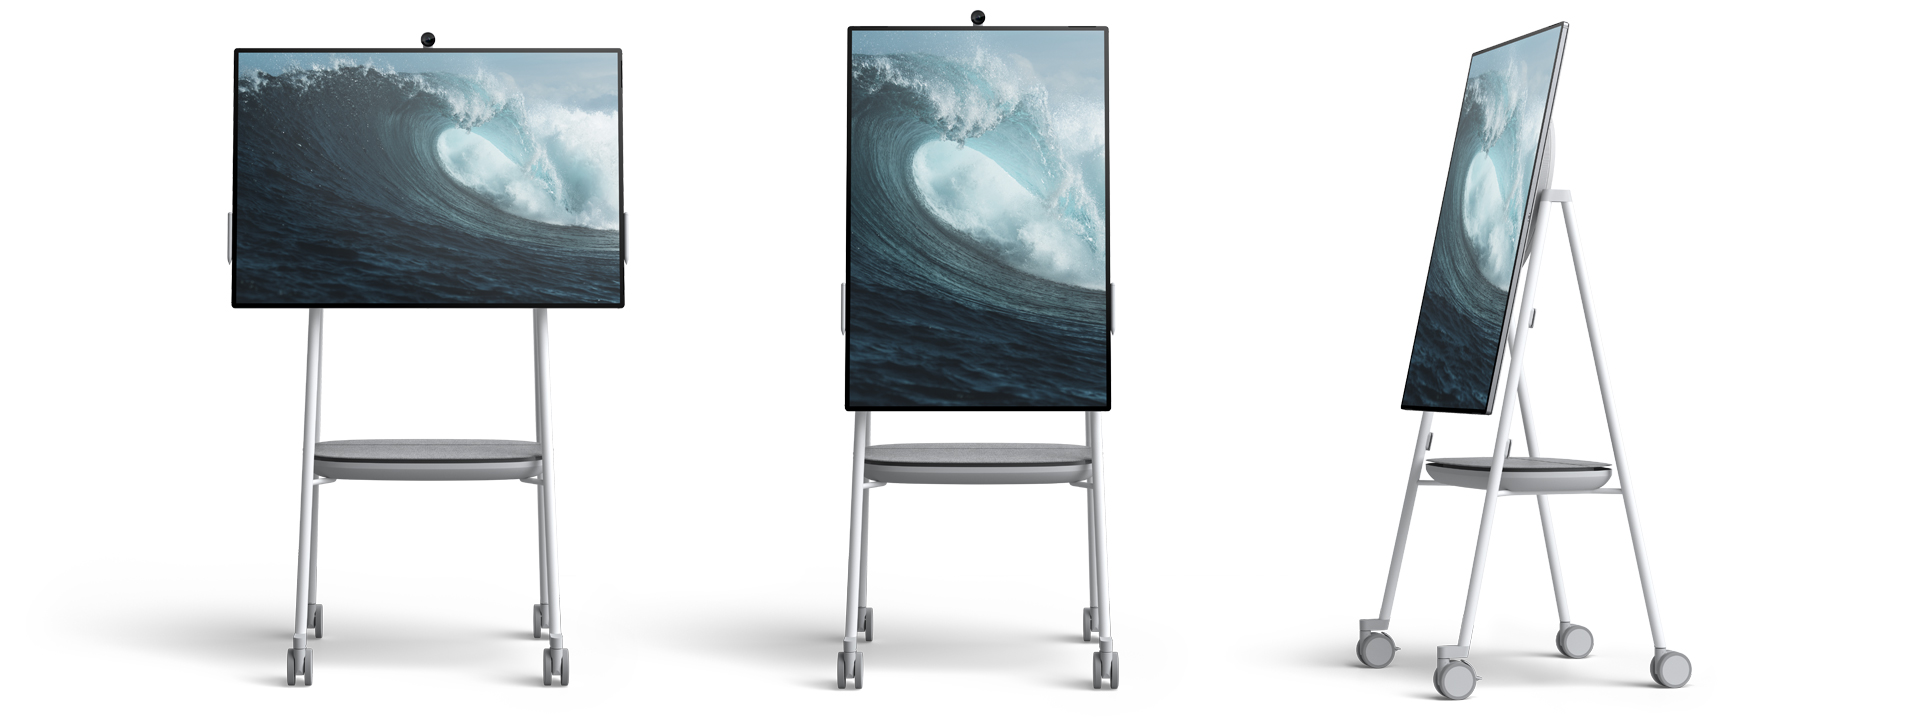 Three Surface Hub 2S smart boards are shown on mobile rolling stands designed by Steelcase